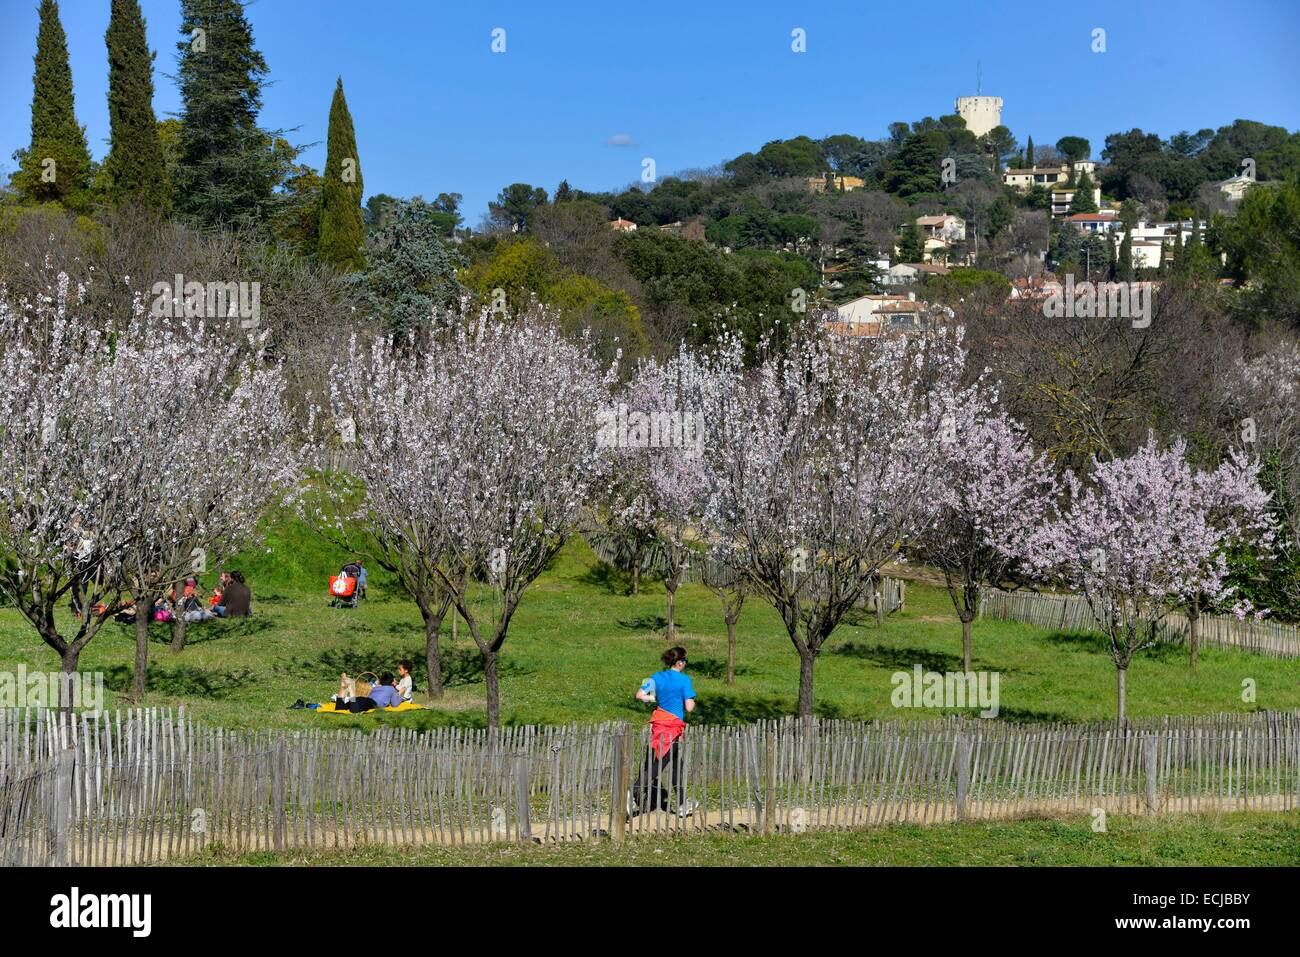 France, Herault, Montpellier, Merci Park, group of persons during a picnic at feet of cherry trees in flower with - Stock Image